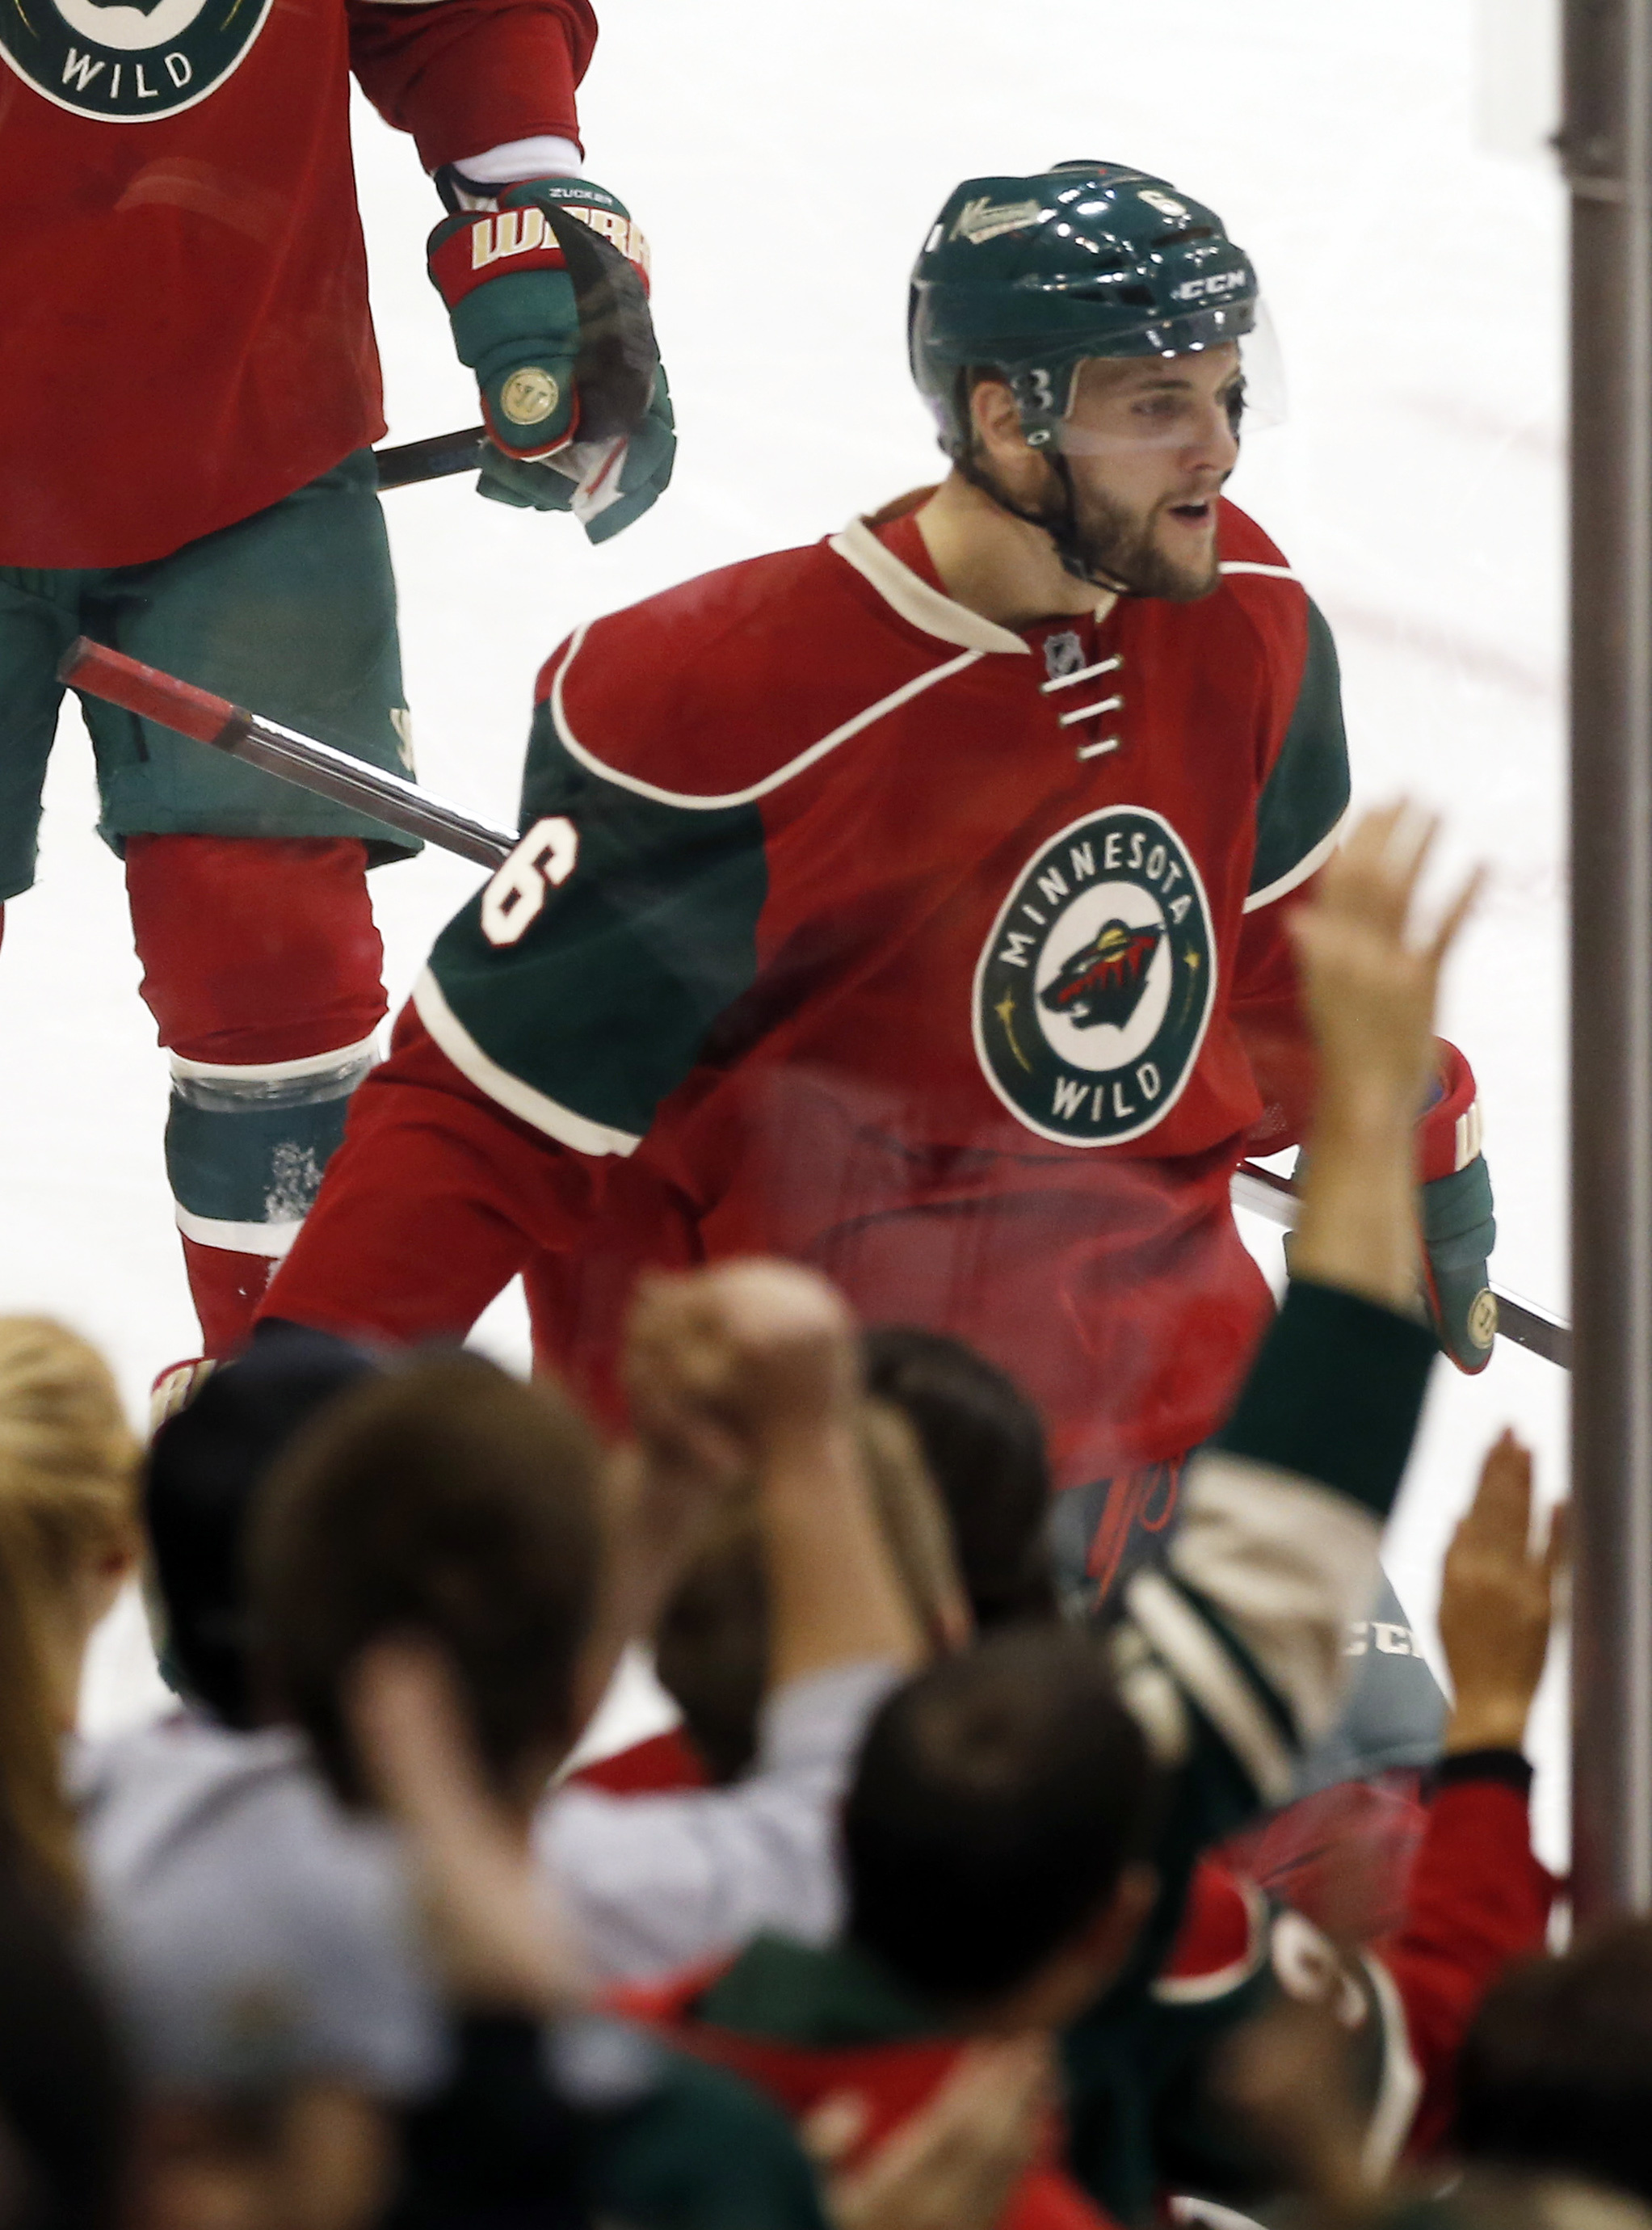 Fans celebrate along with Minnesota Wild's Marco Scandella after his power play goal off Edmonton Oilers goalie Cam Talbot in the first period of an NHL hockey game, Tuesday, Oct. 27, 2015, in St. Paul, Minn. (AP Photo/Jim Mone)